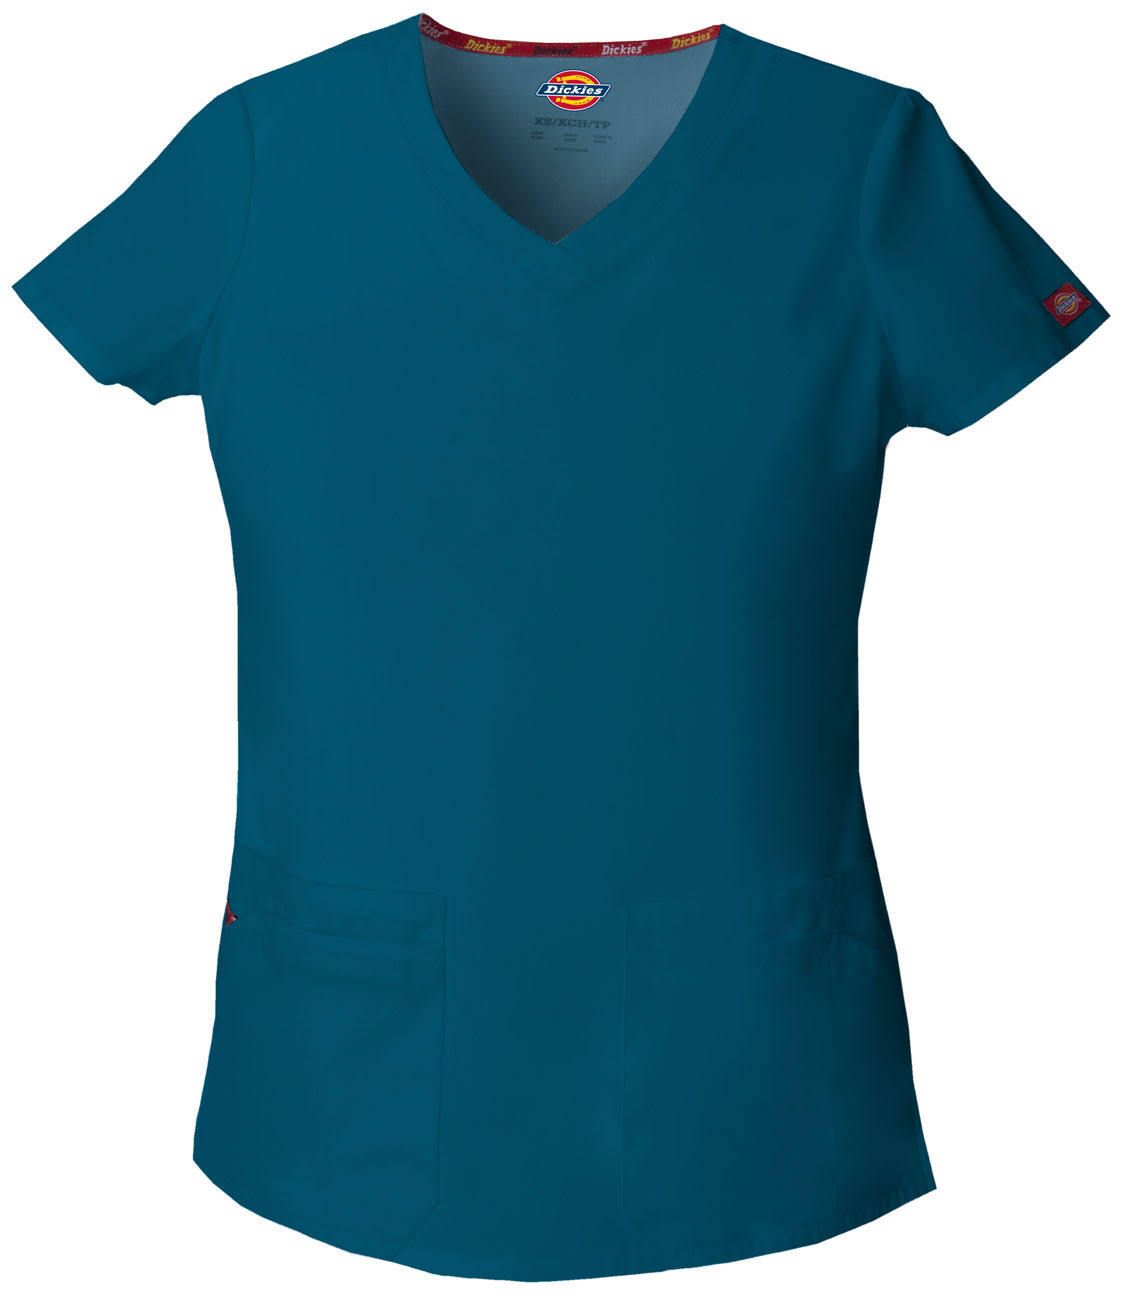 Dickies Women's Eds Signature Scrubs V-Neck Top - Caribbean Blue, Large